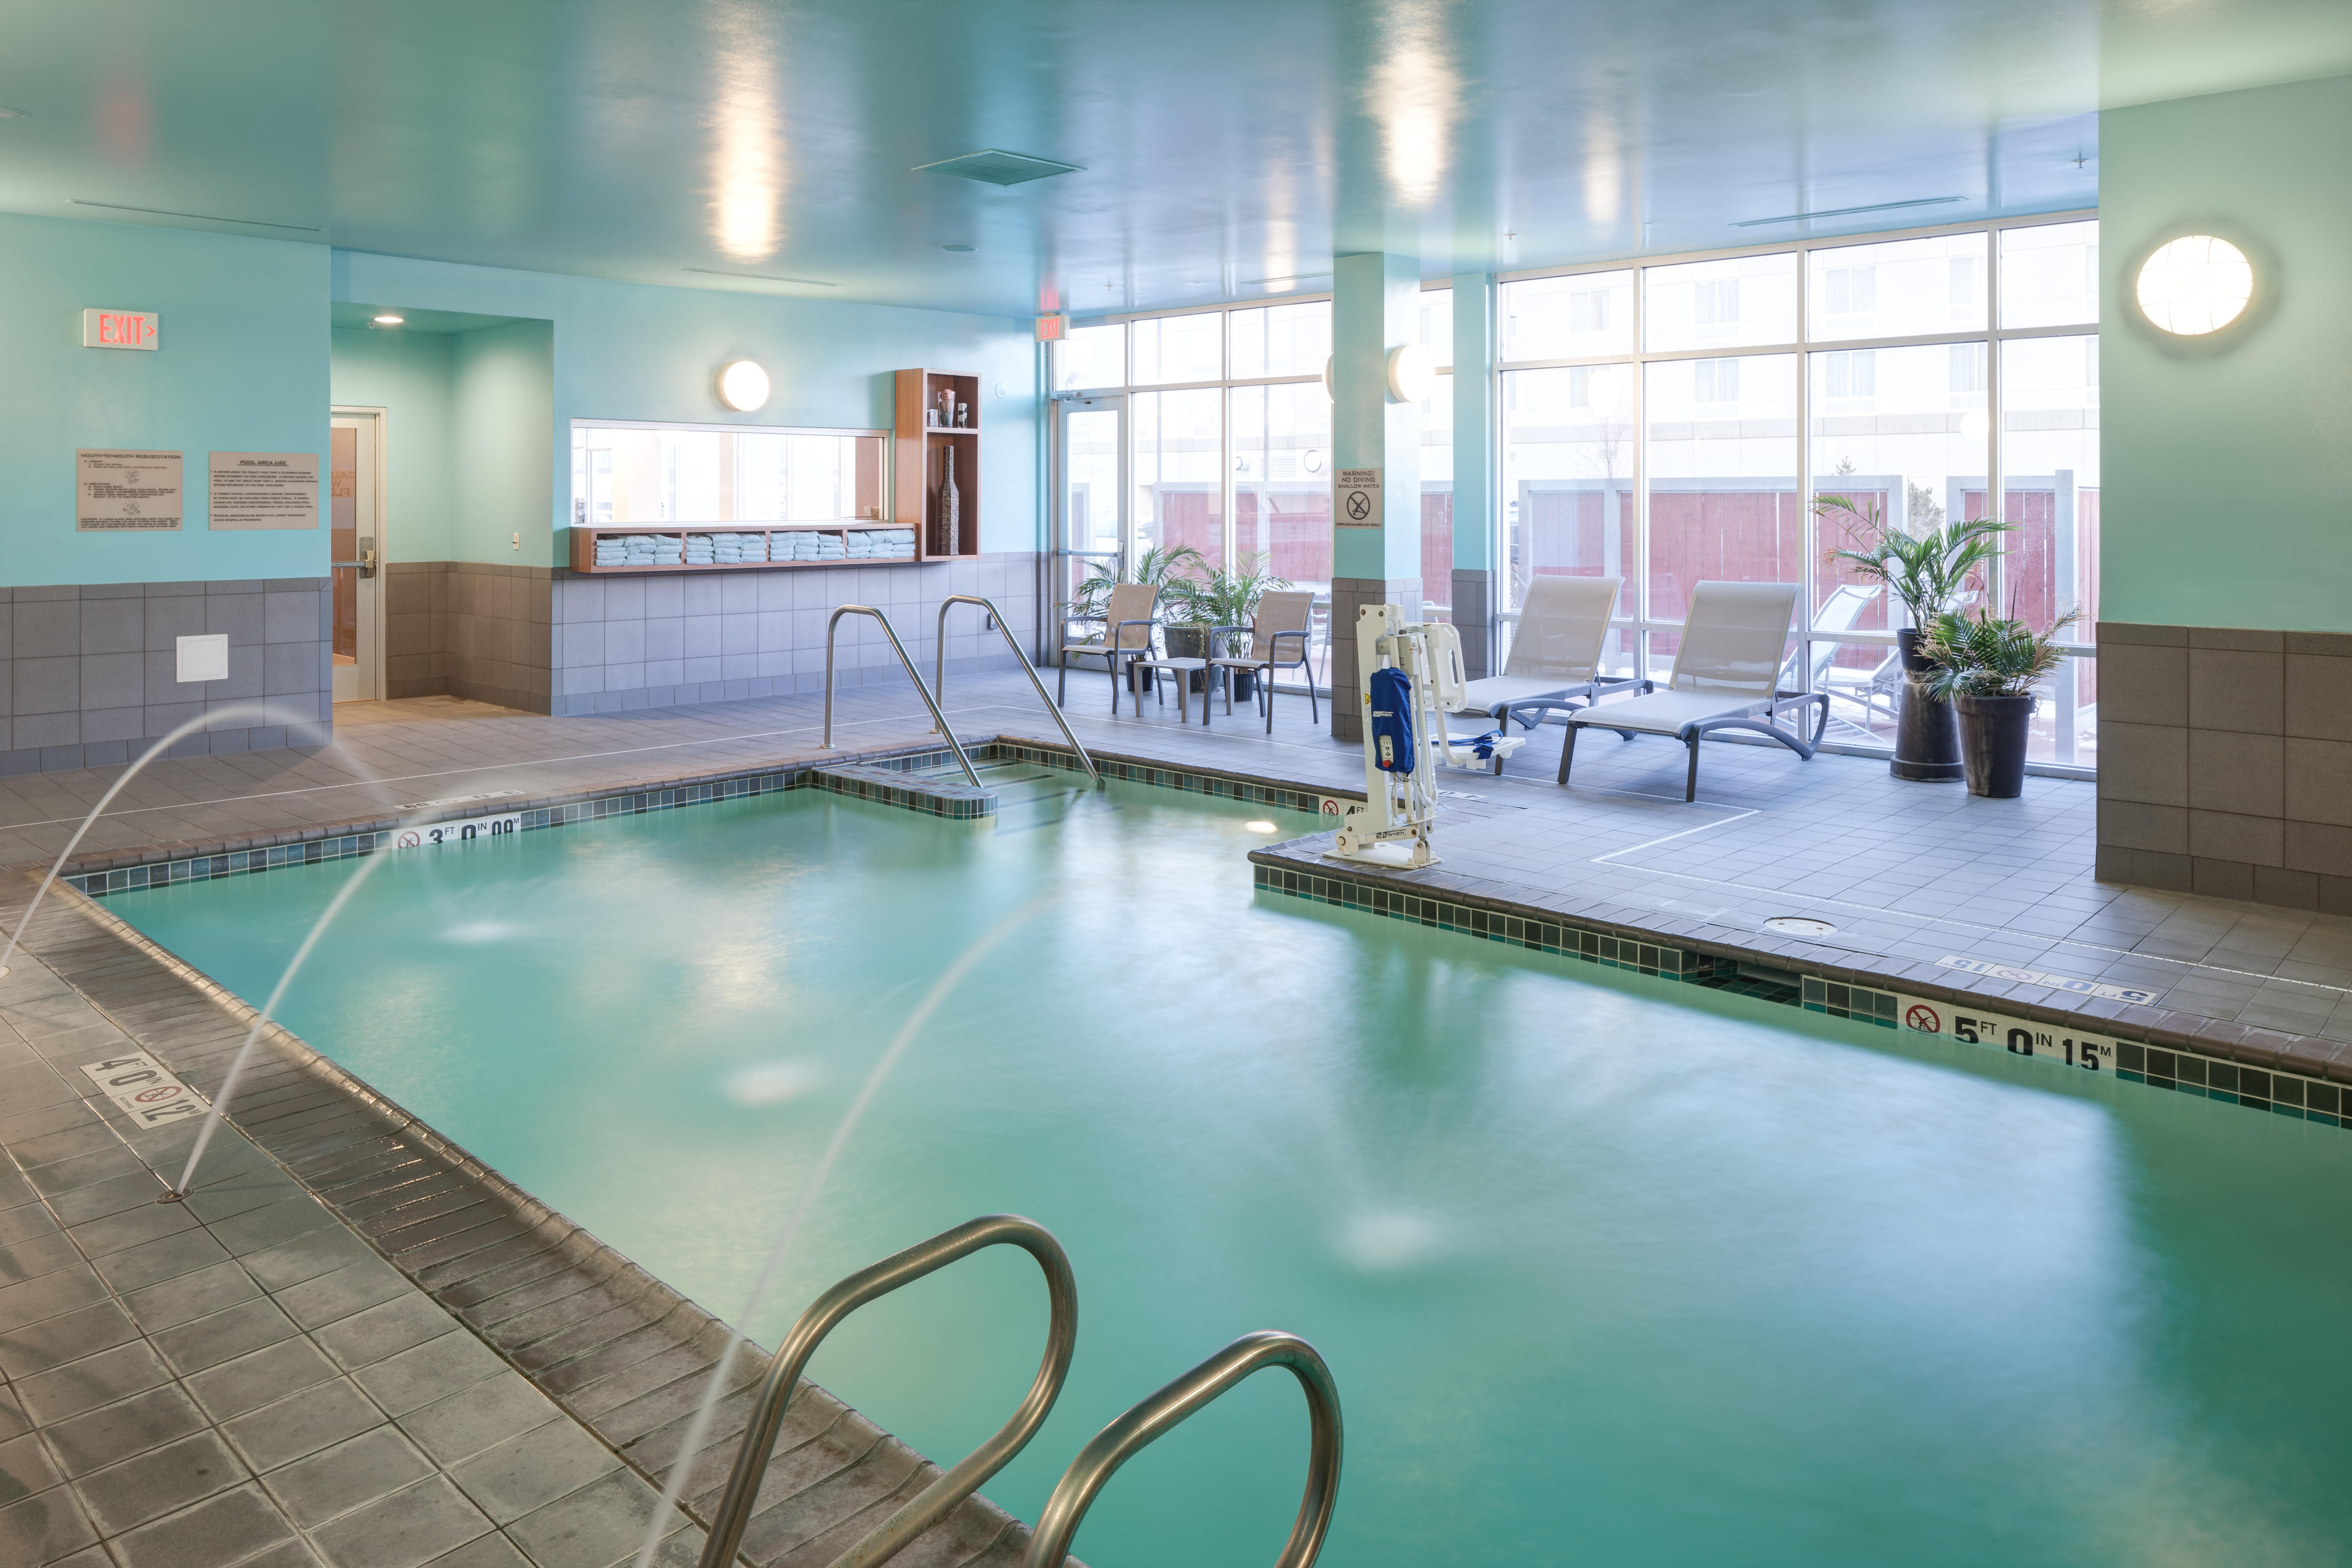 SpringHill Suites by Marriott Salt Lake City Airport image 5